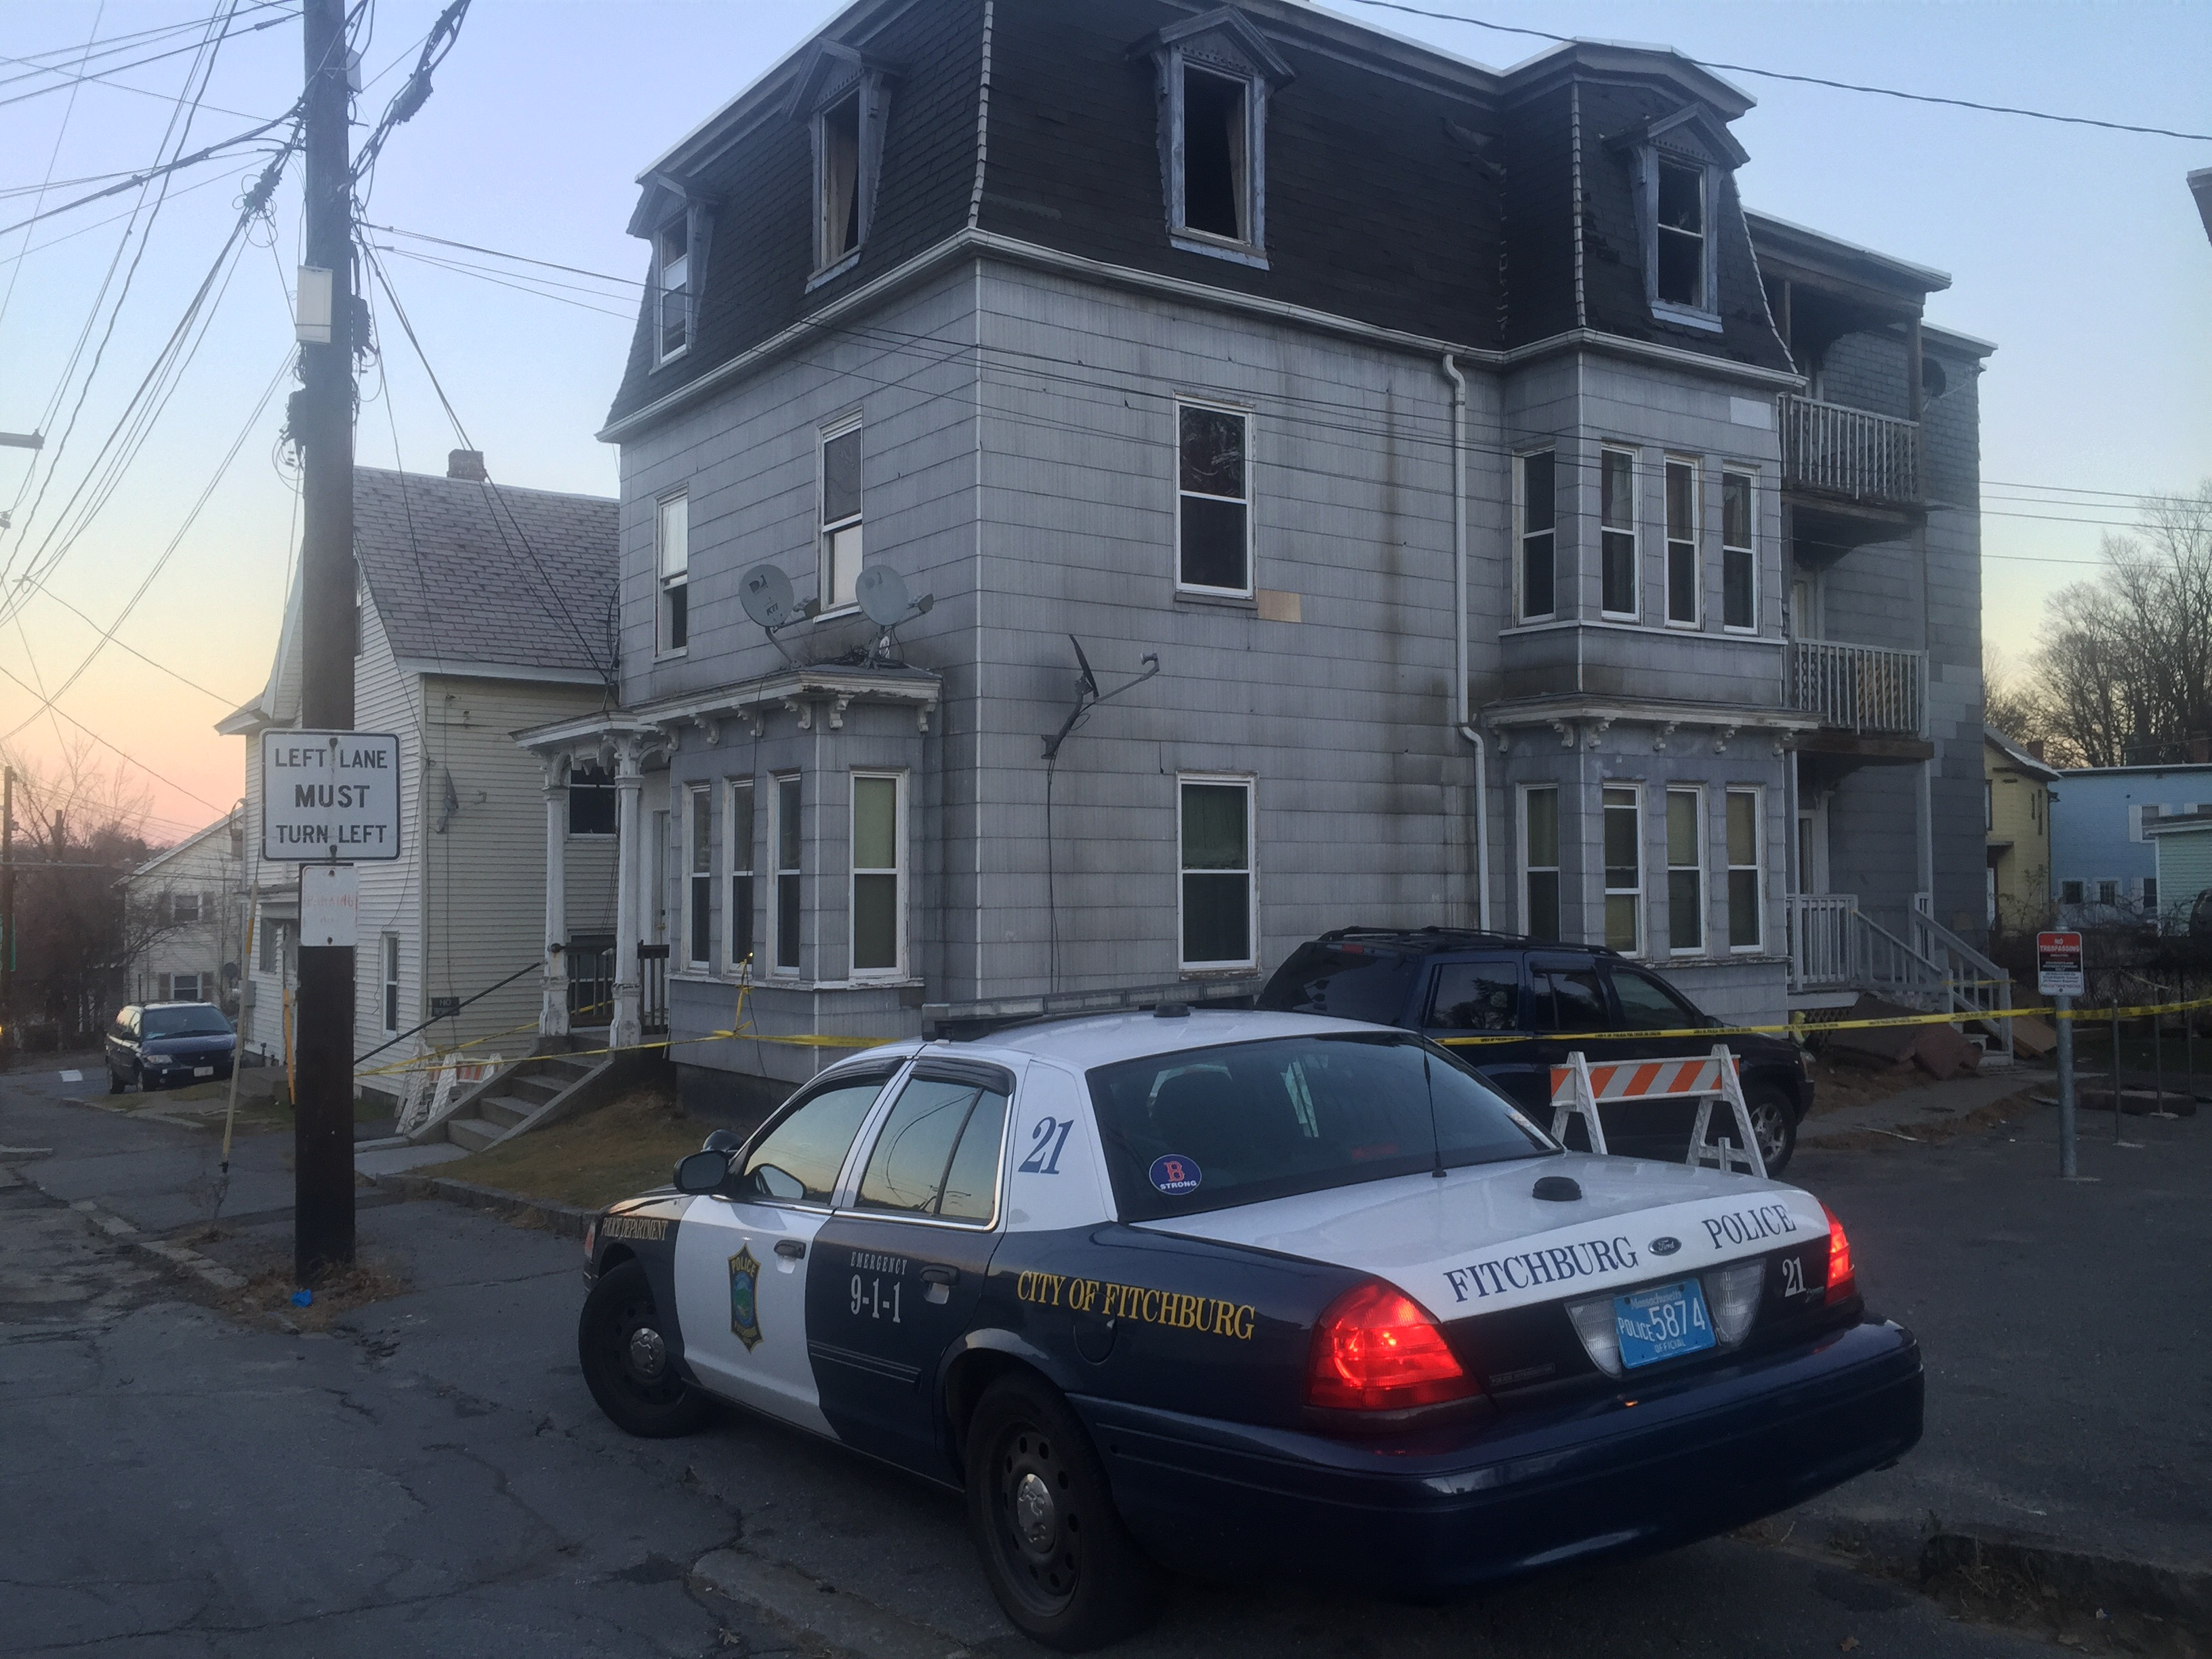 The scene of the fatal Fitchburg fire